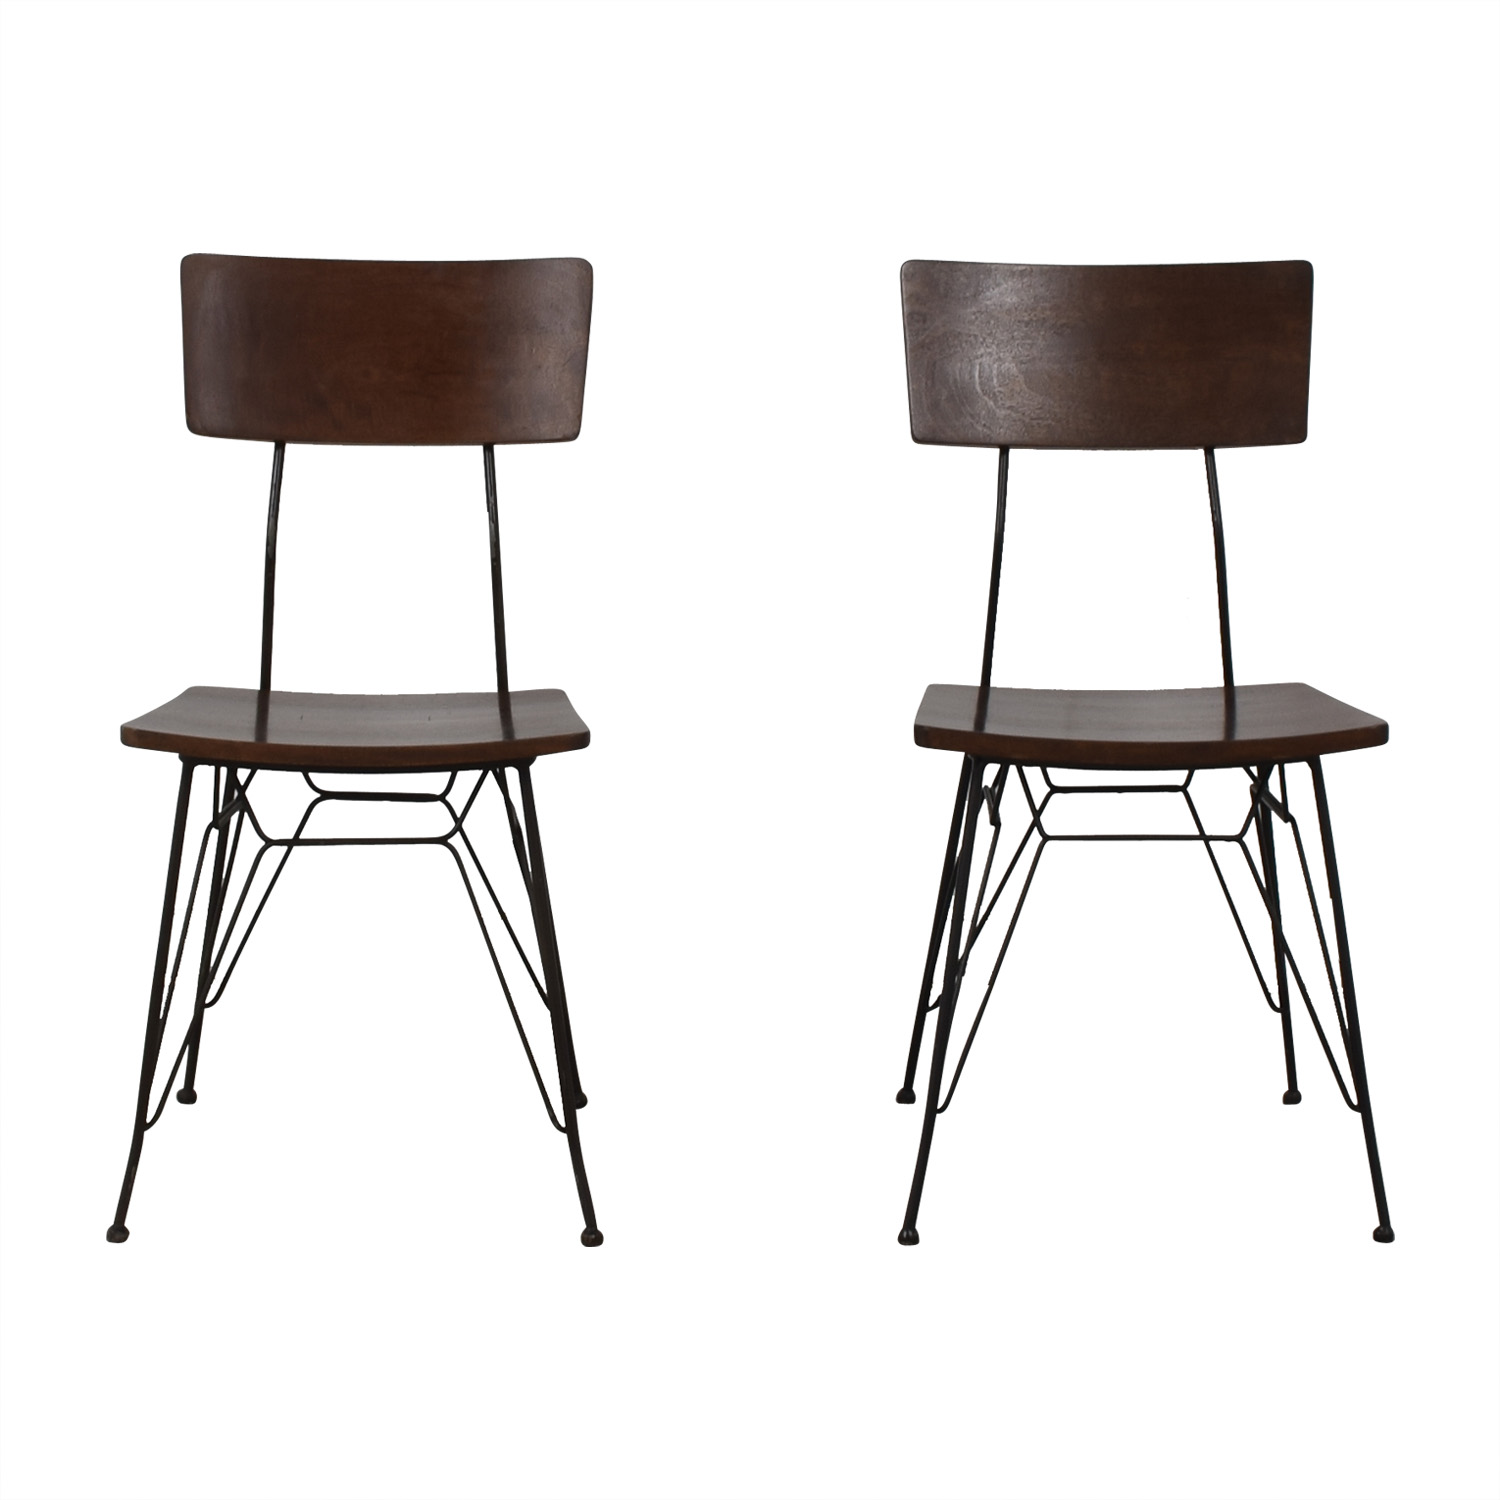 Crate & Barrel Crate & Barrel Elston Dining Chairs